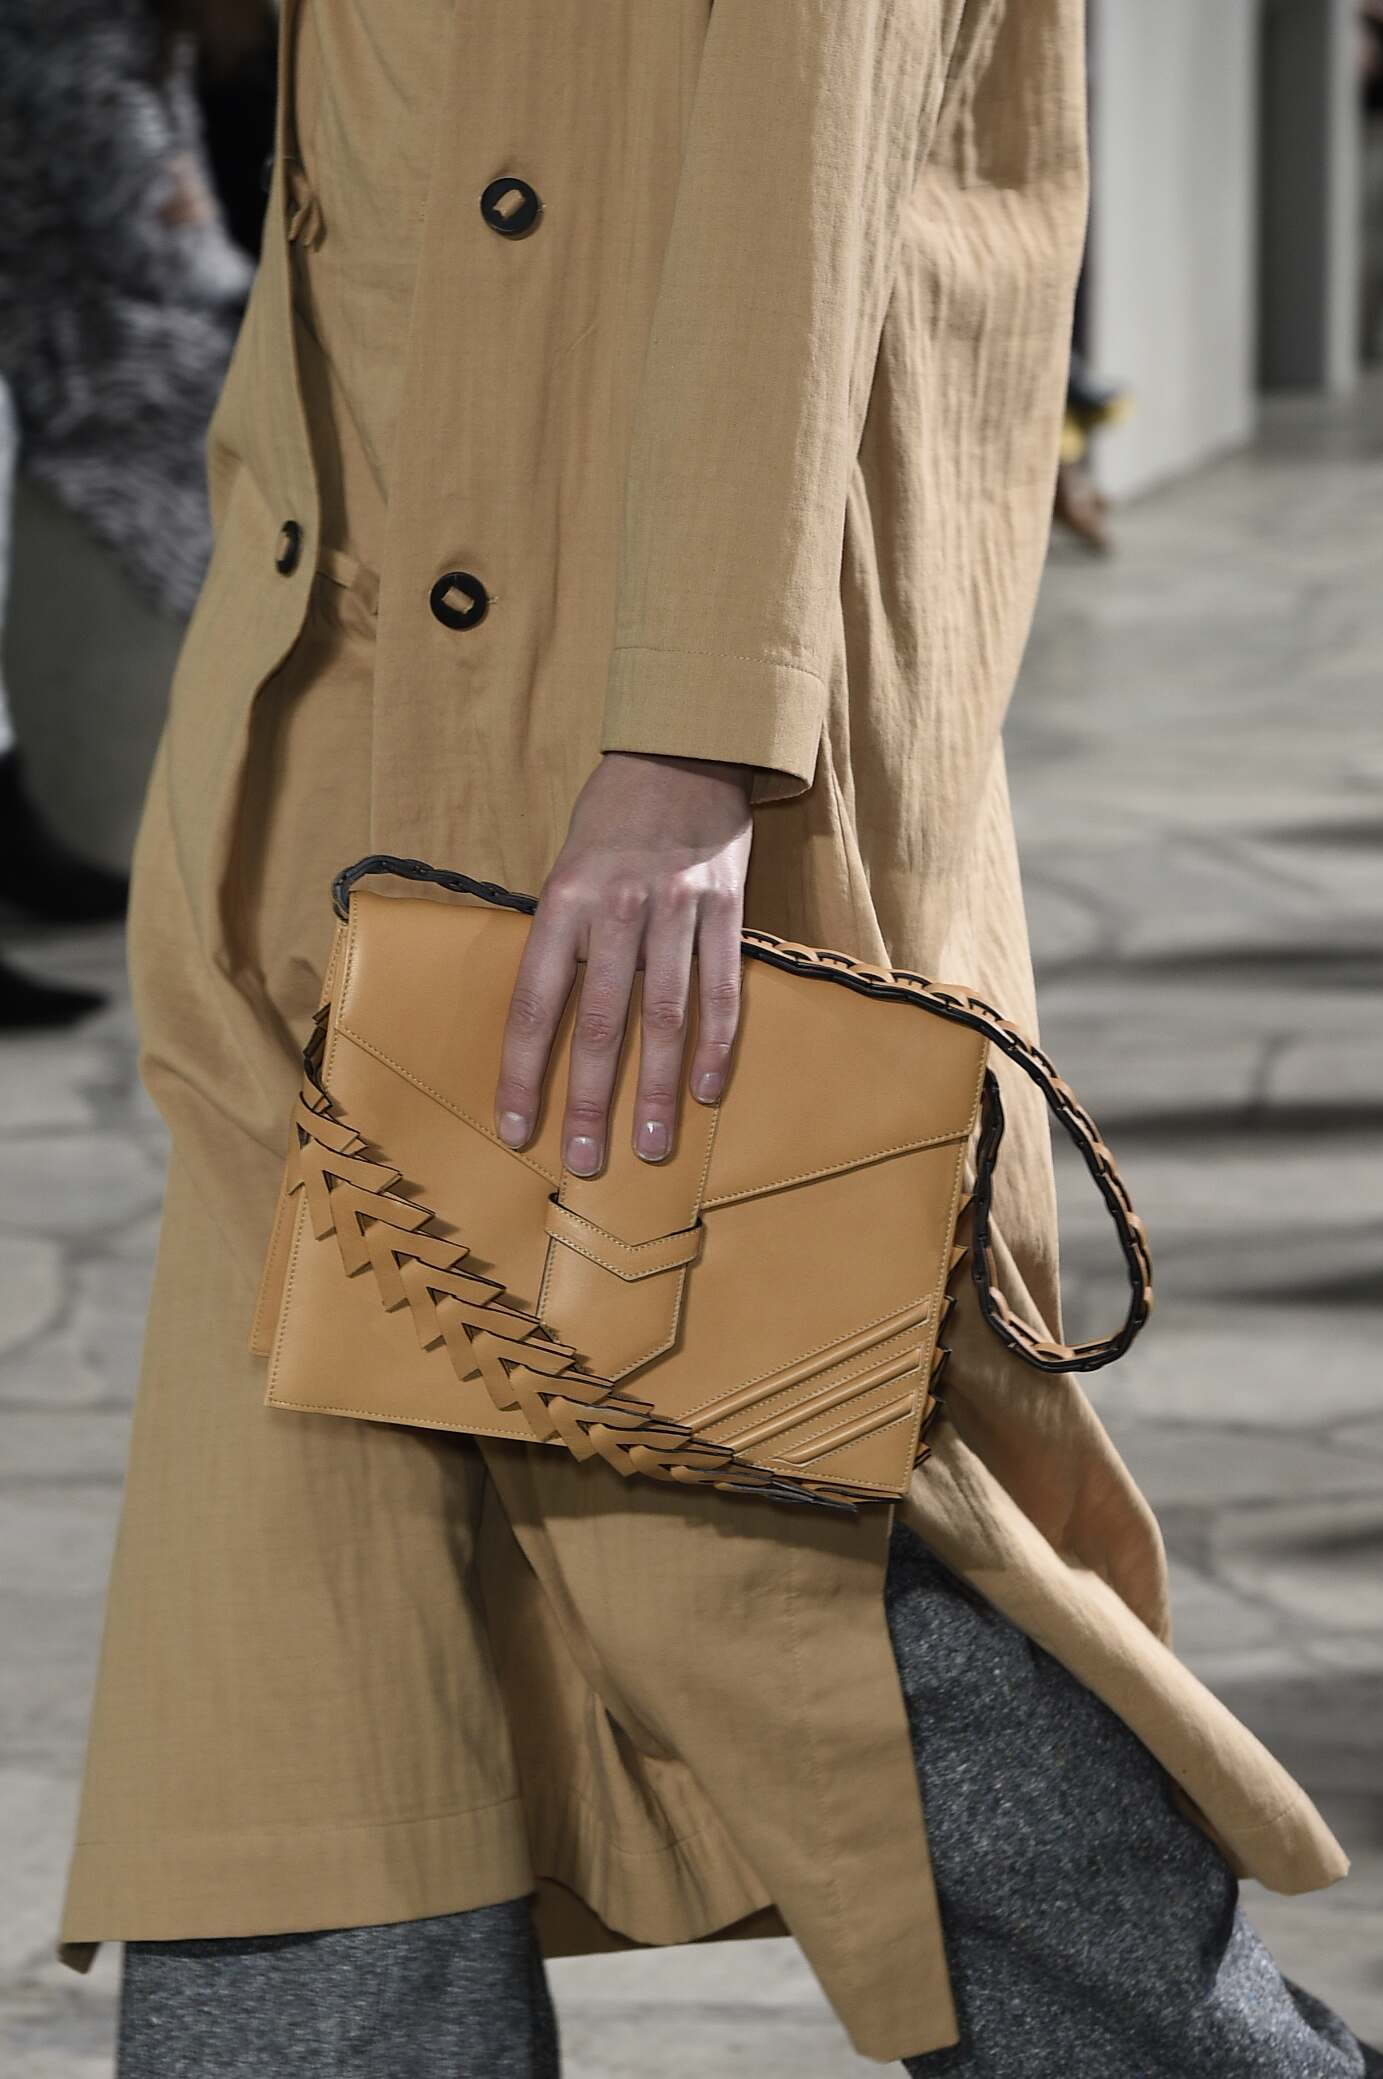 2015 Winter Fashion Show Loewe Bag Detail Collection